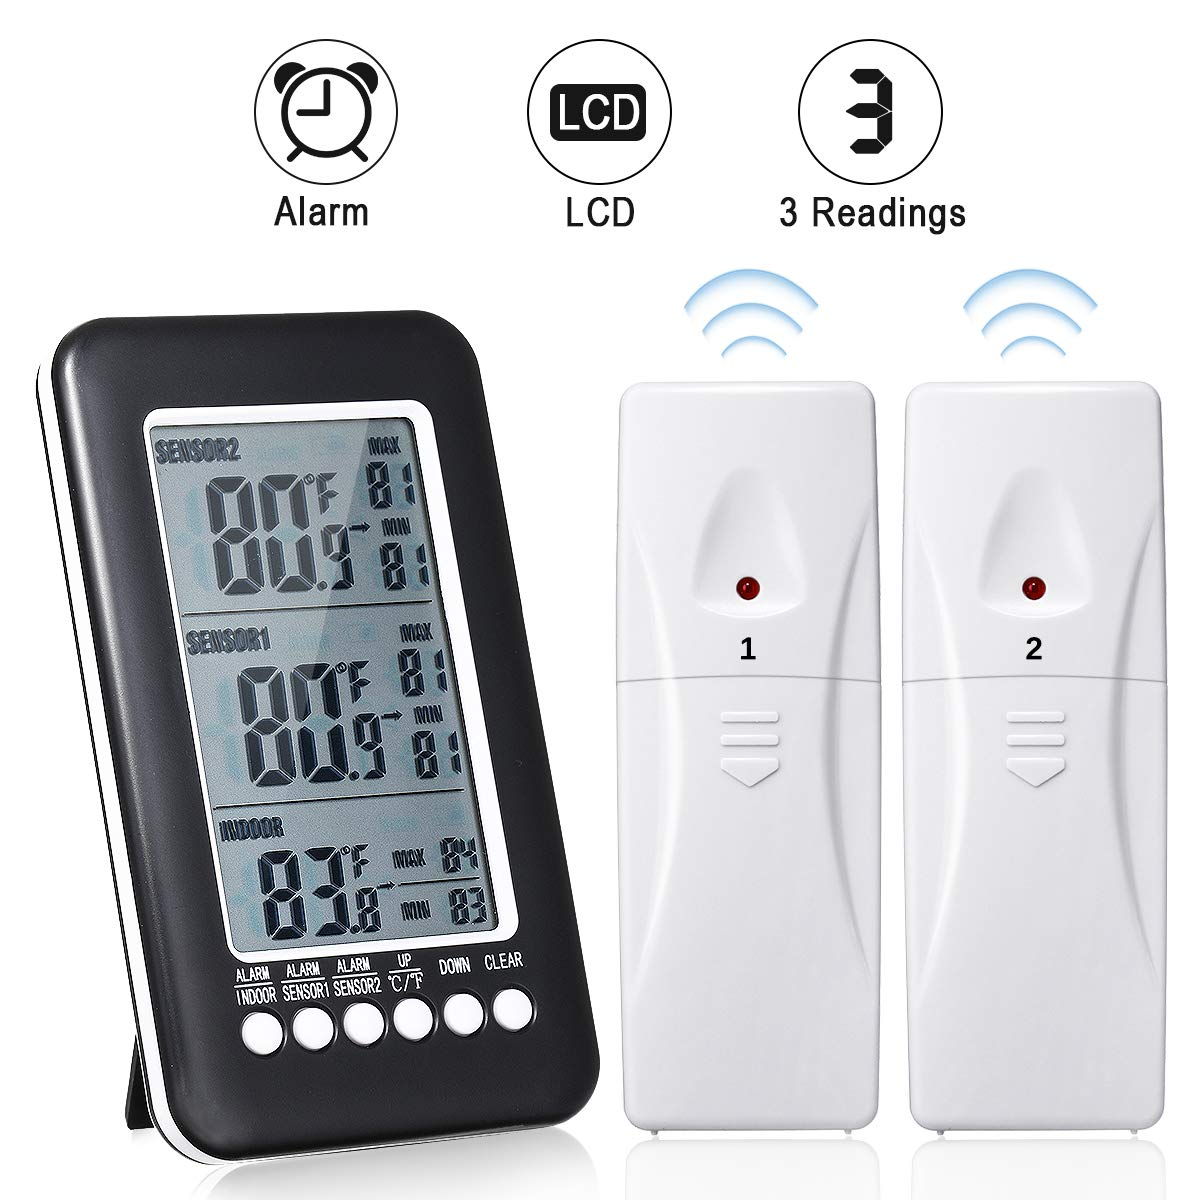 GEMITTO Digital Indoor Outdoor Thermometer, with Temperature Gauge & LCD Alarm Clock, Wireless Outdoor Weather Meter, for Bedroom Greenhouse Garage Warehouse by GEMITTO